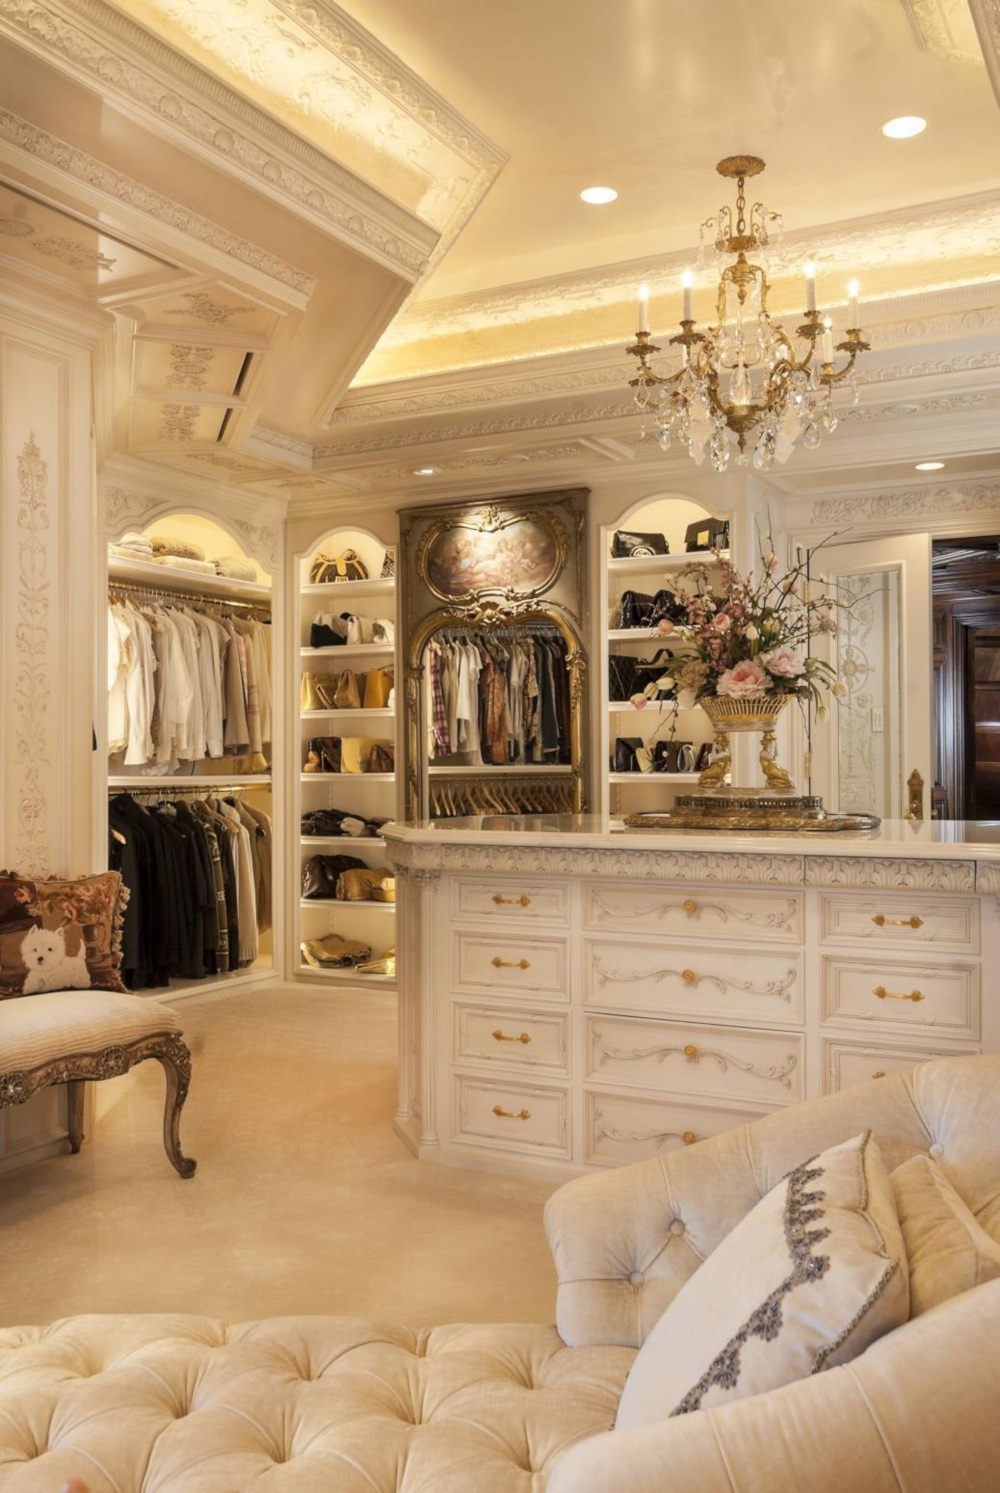 5 Luxury Closet Decor Ideas Luxury Homes Luxury Hotels to inspire Luxury Homes 5 Luxury Closet Decor Ideas 05 Luxury Homes Luxury Hotels to inspire Luxury Homes 5 Luxury Closet Decor Ideas 05